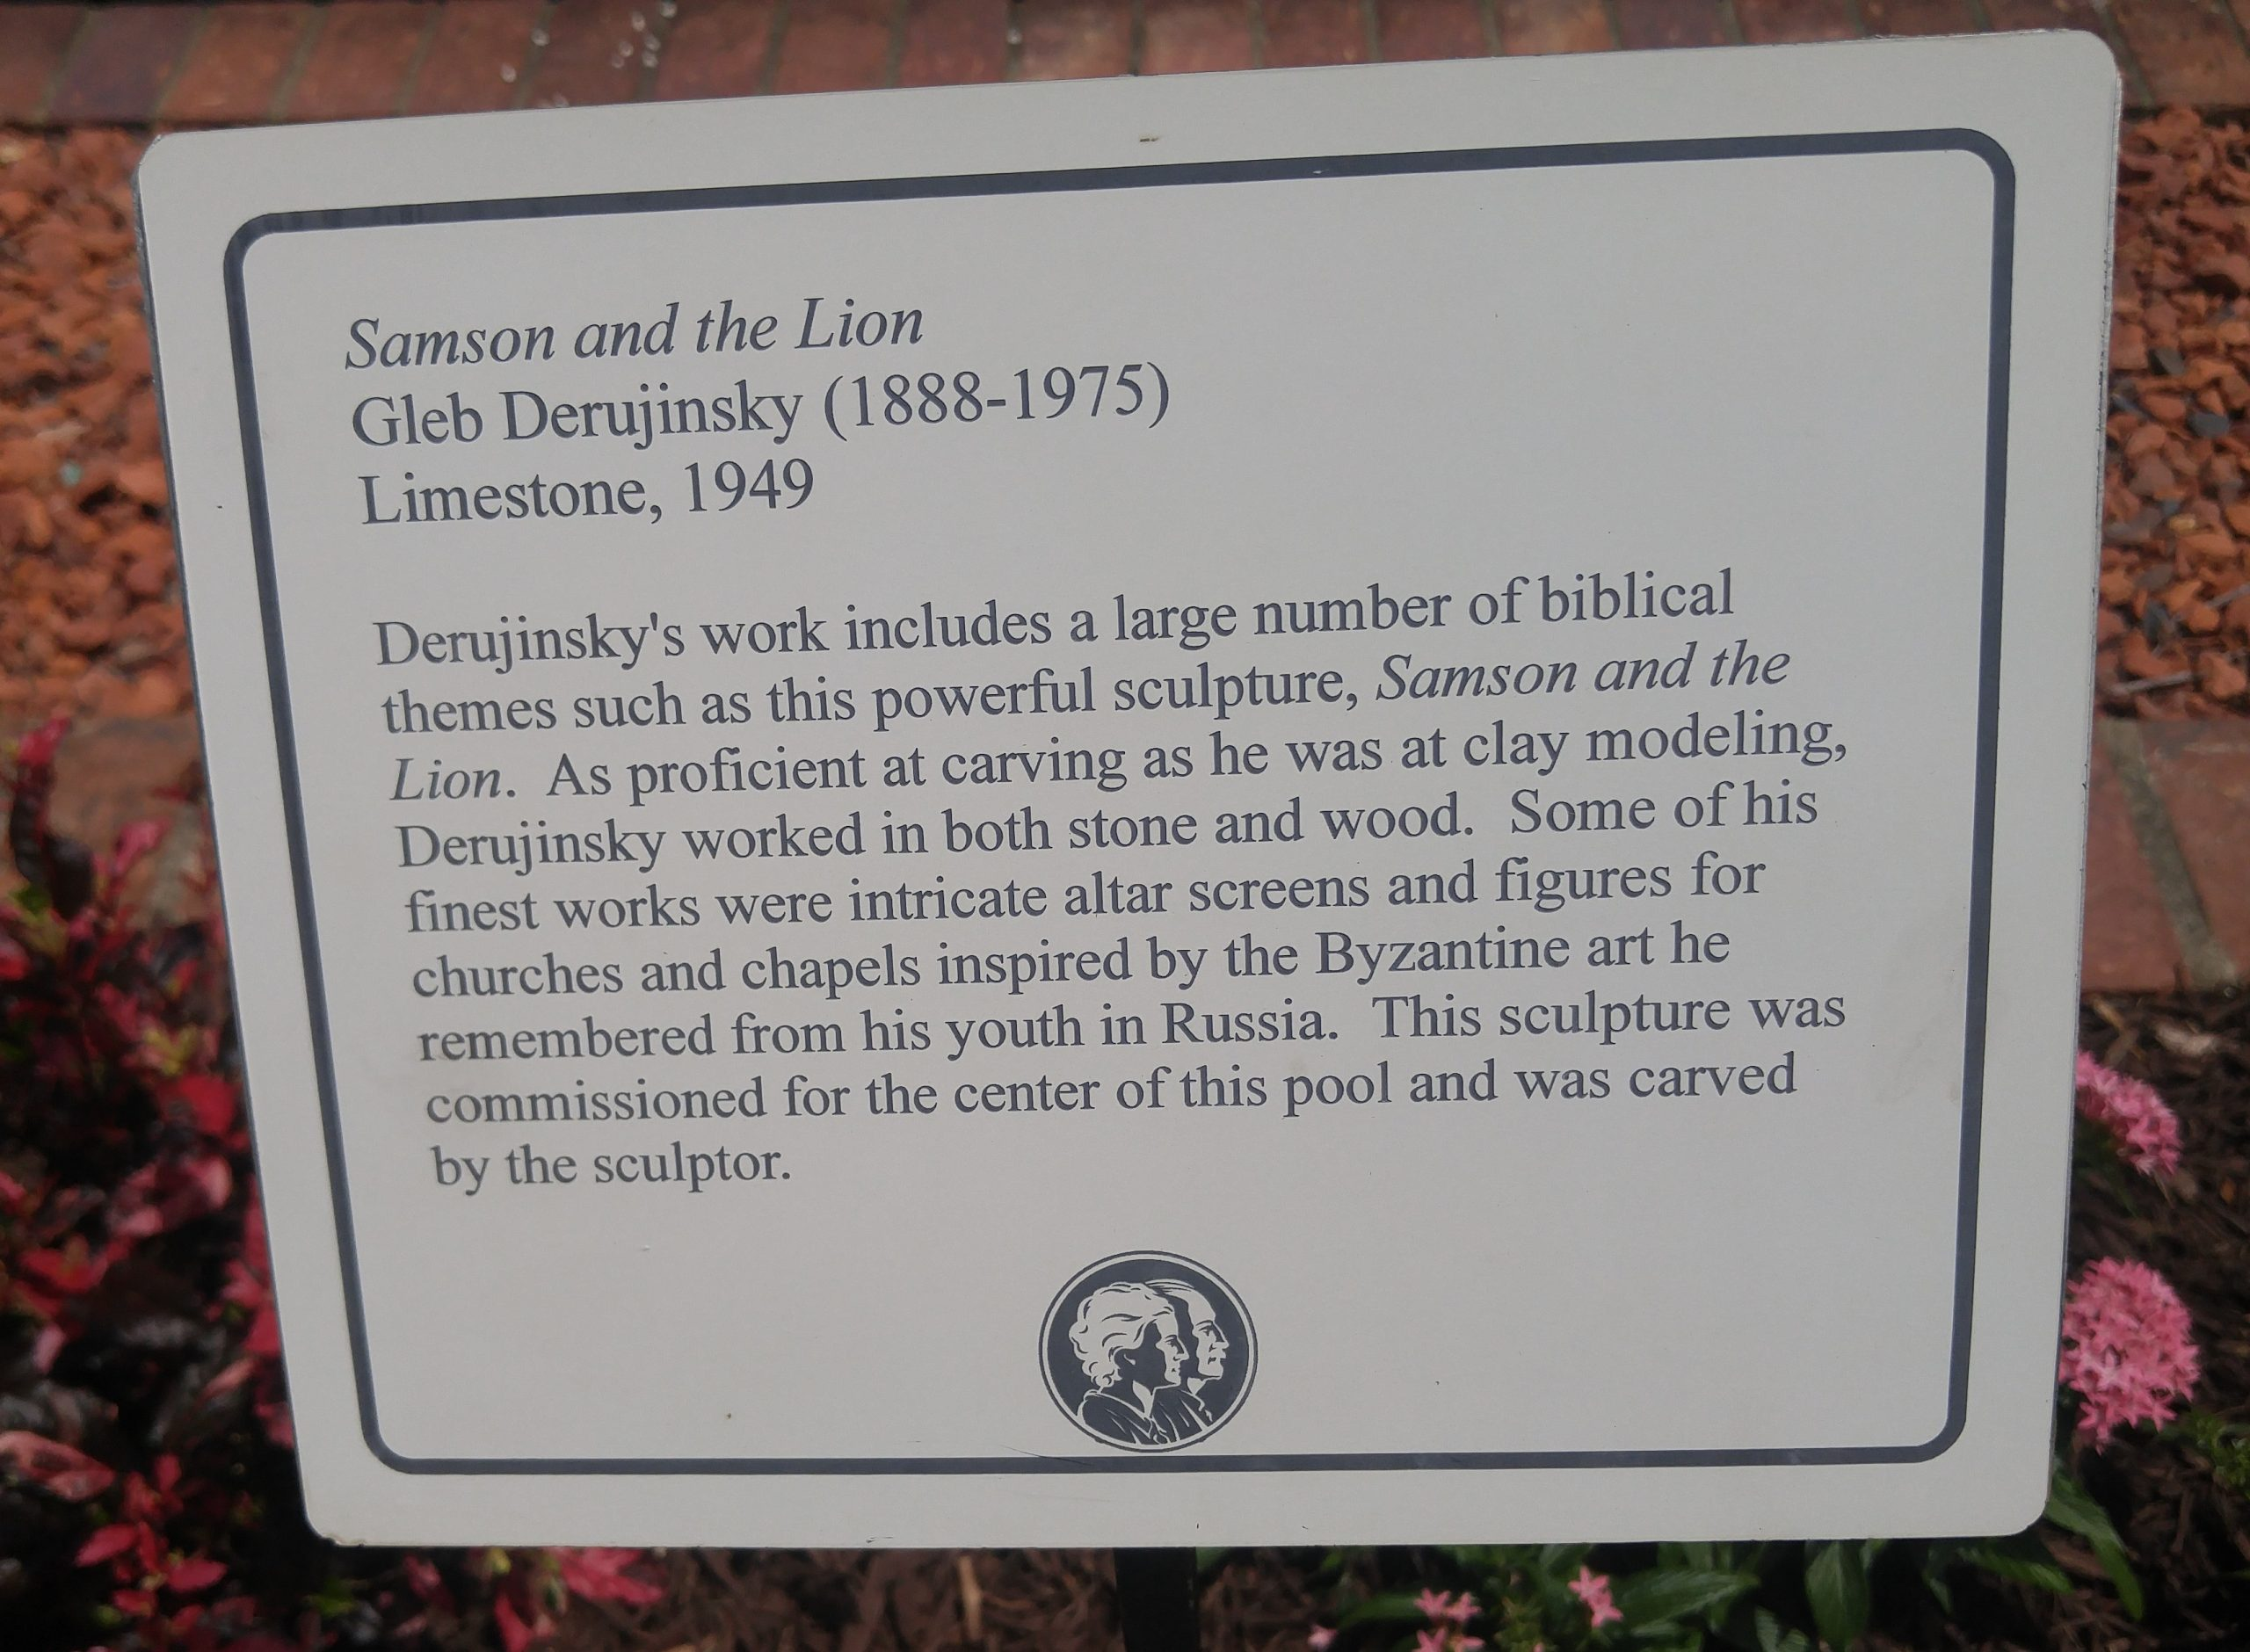 Samson and the Lion by Gleb W. Derujinsky (plaque)